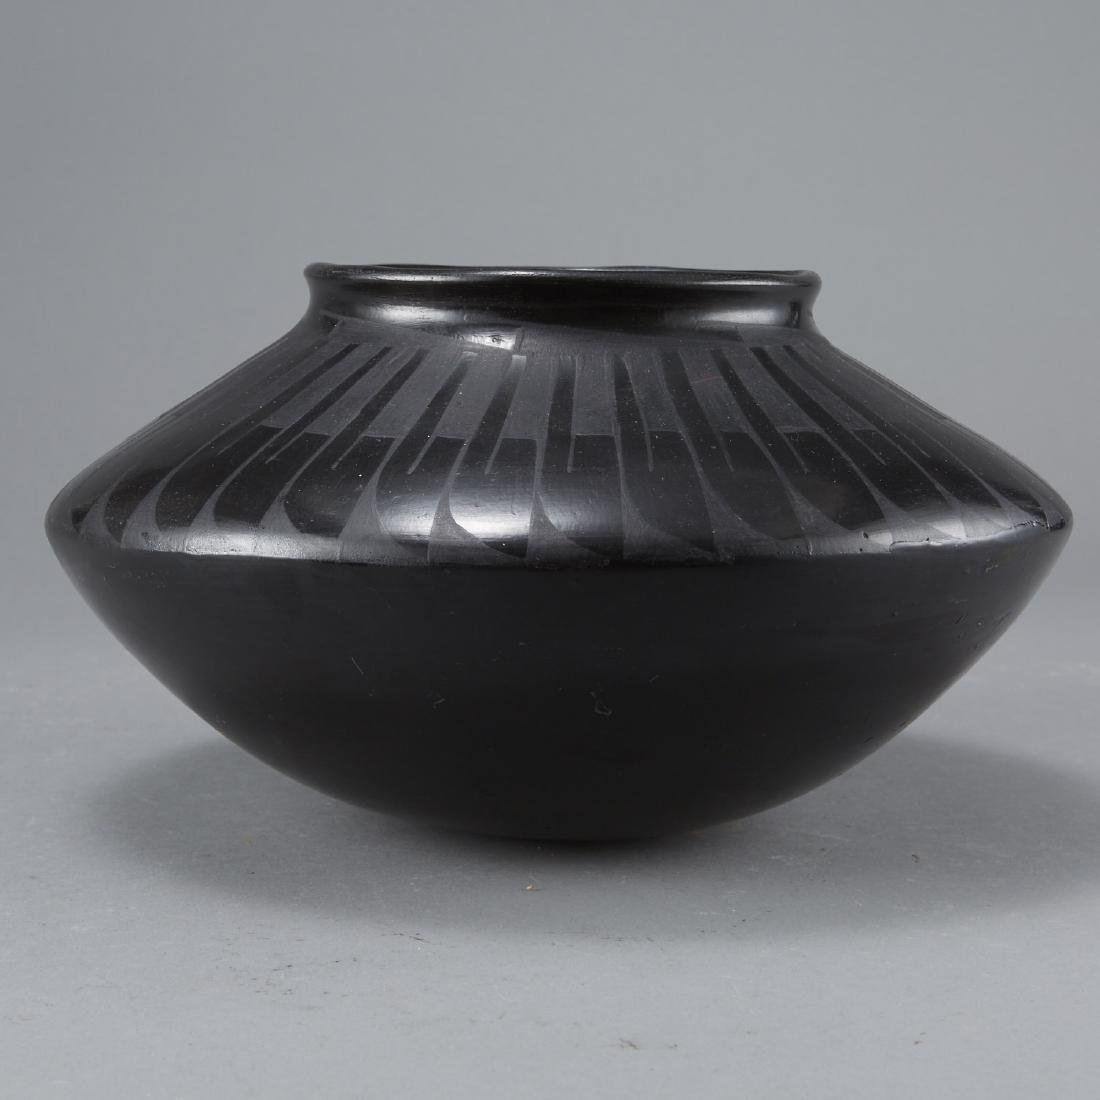 San Ildefonso Blackware Jar